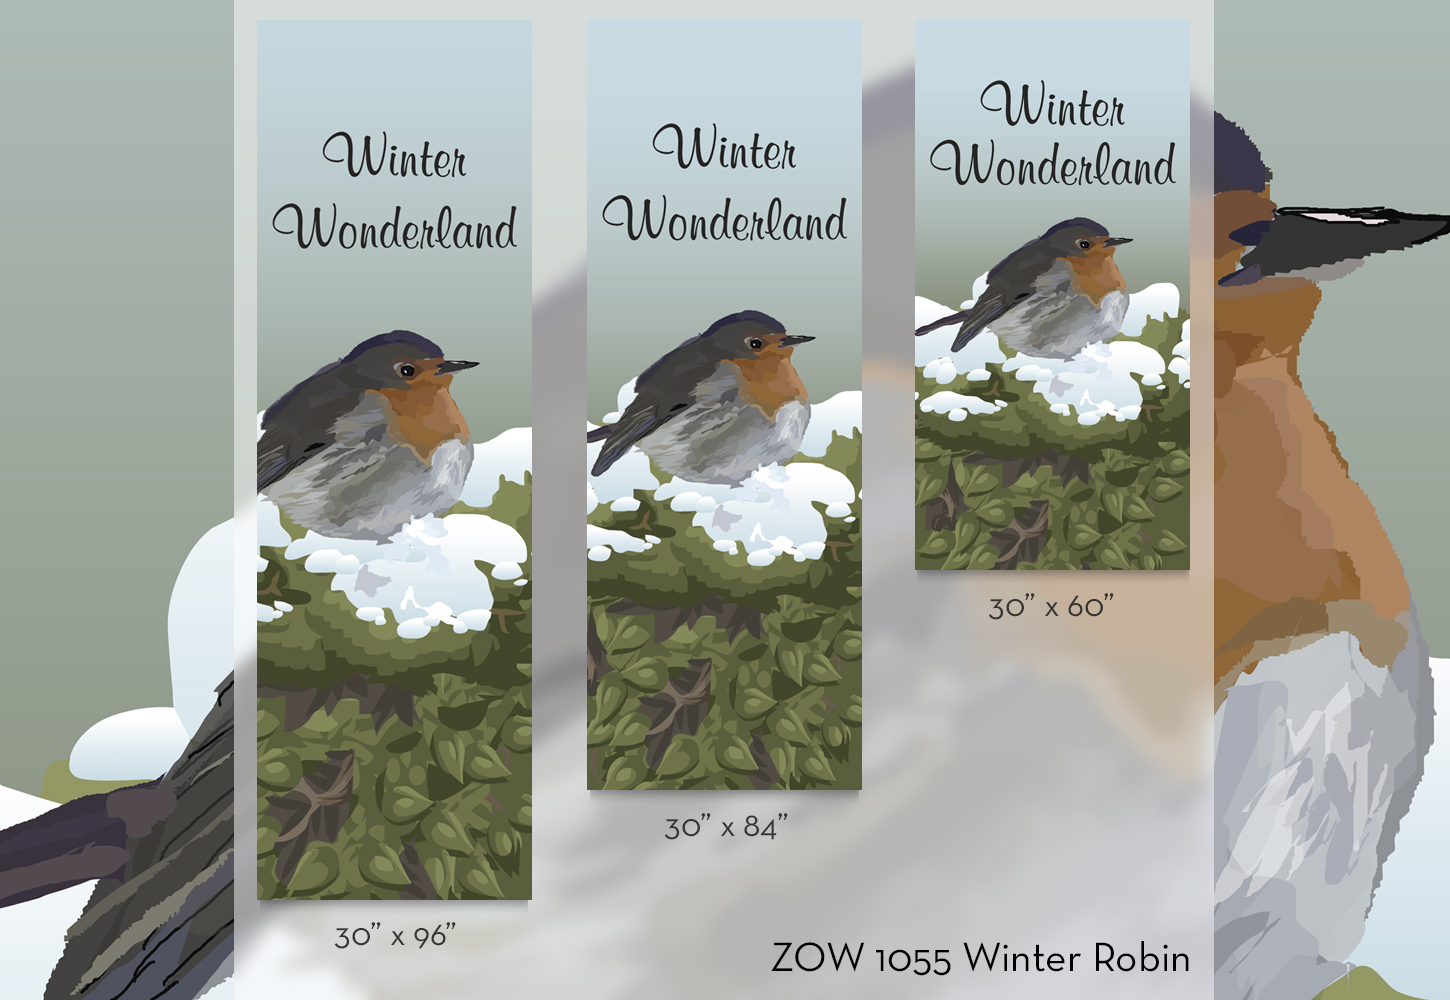 ZOW 1055 Winter Robin